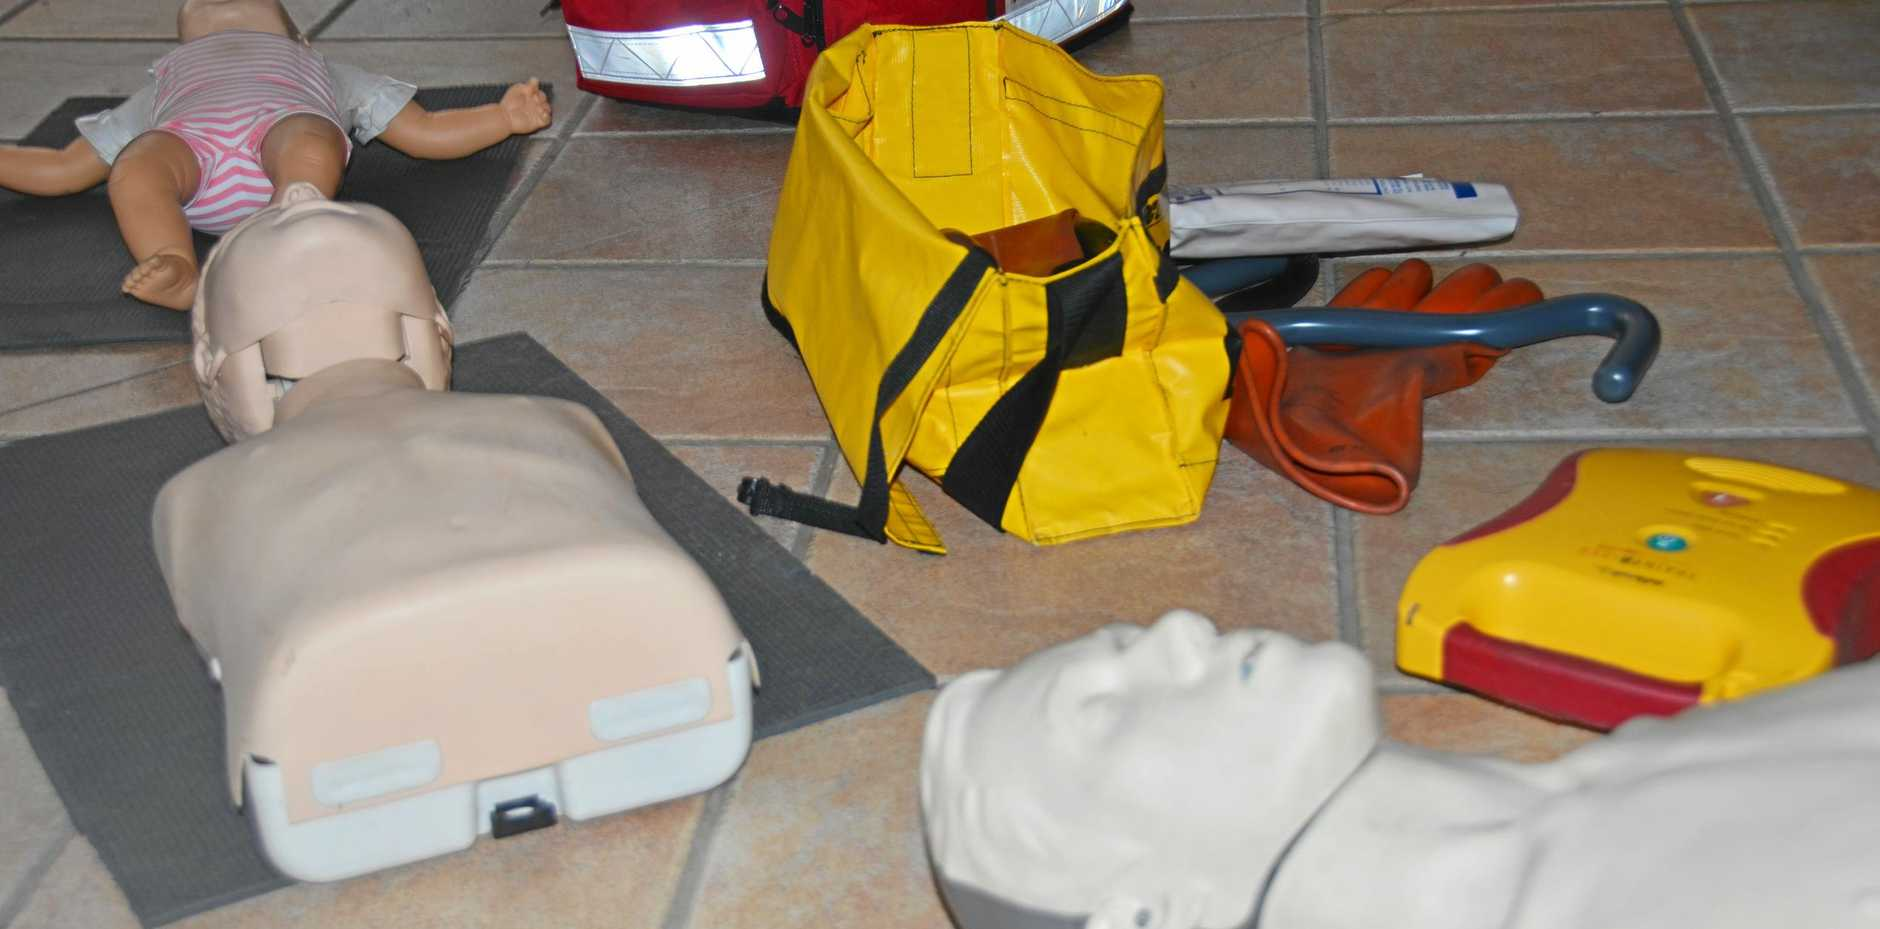 Kingaroy Home Aids and First Aid Training offers a range of health and safety training for tradesmen.